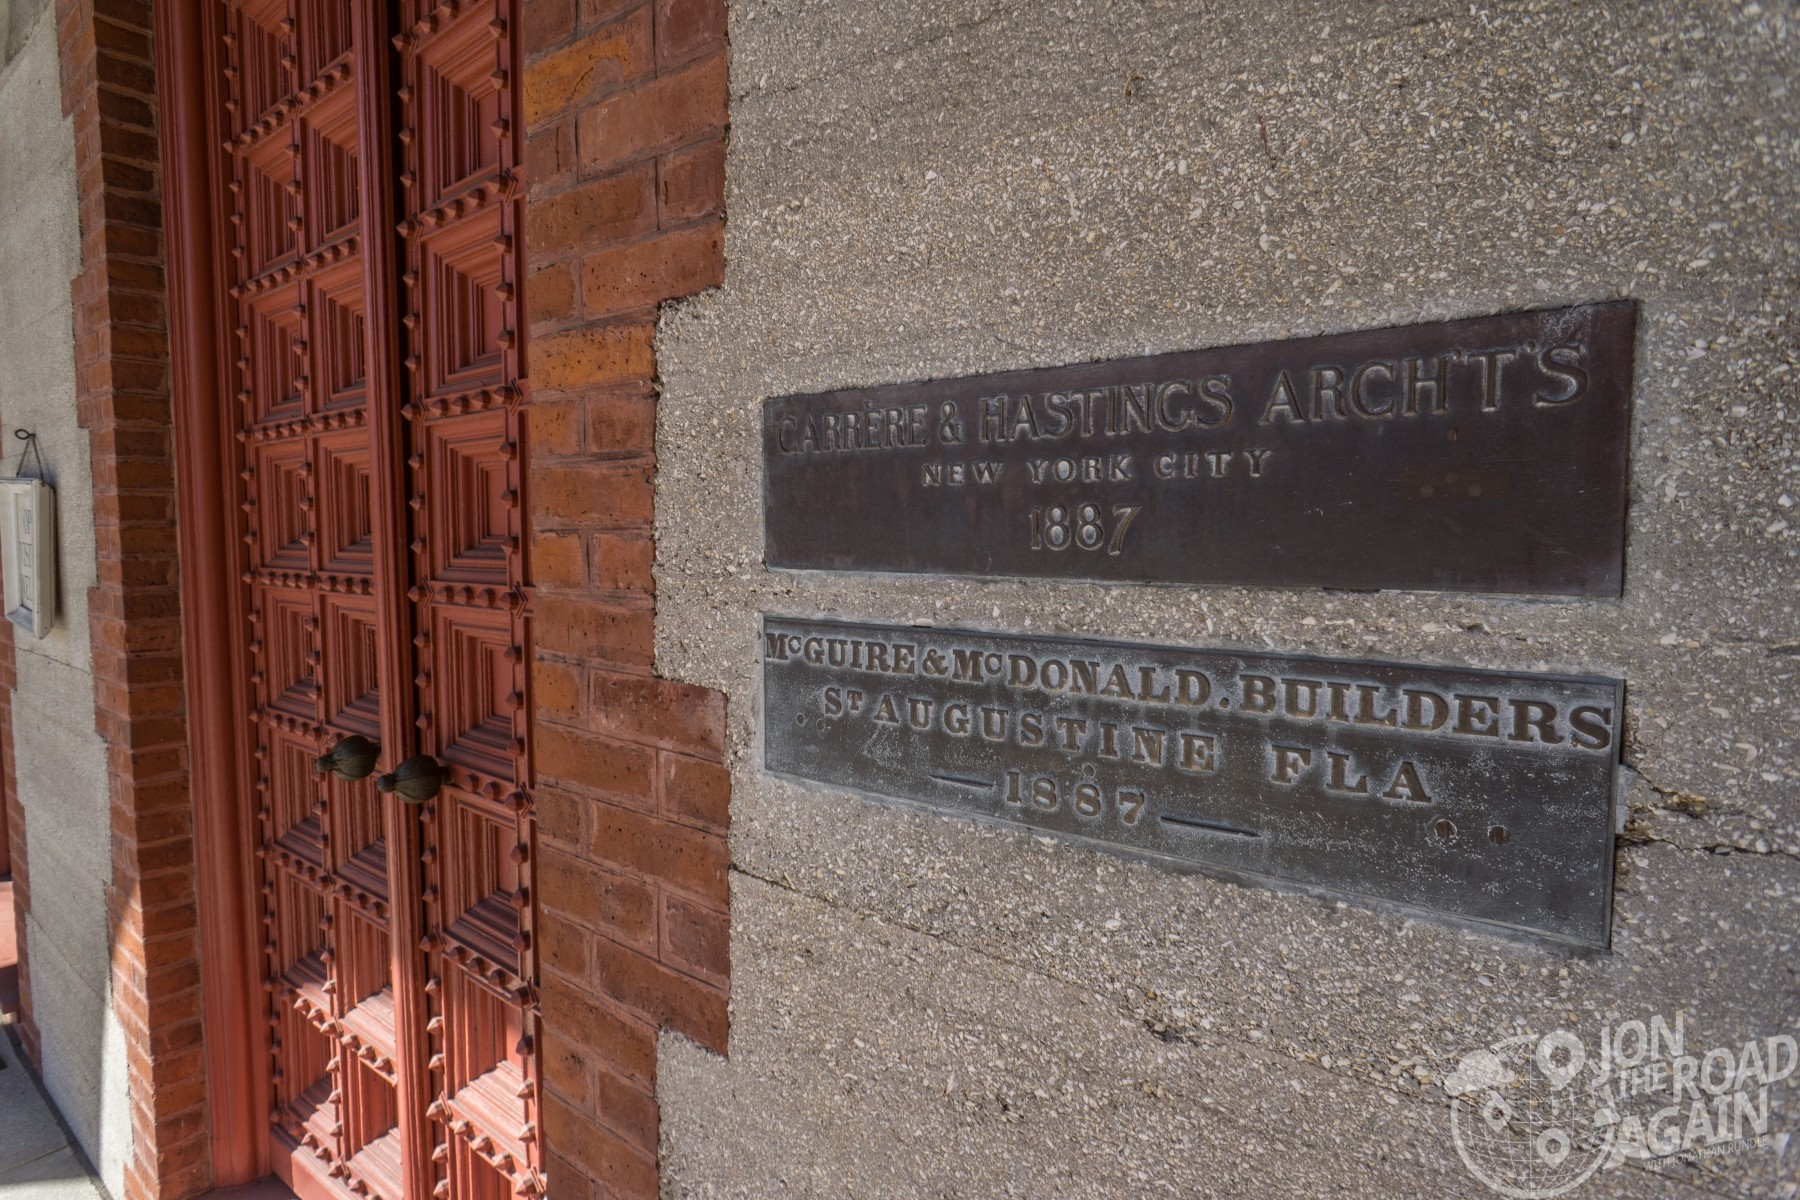 Carrere & Hastings Architects plaque